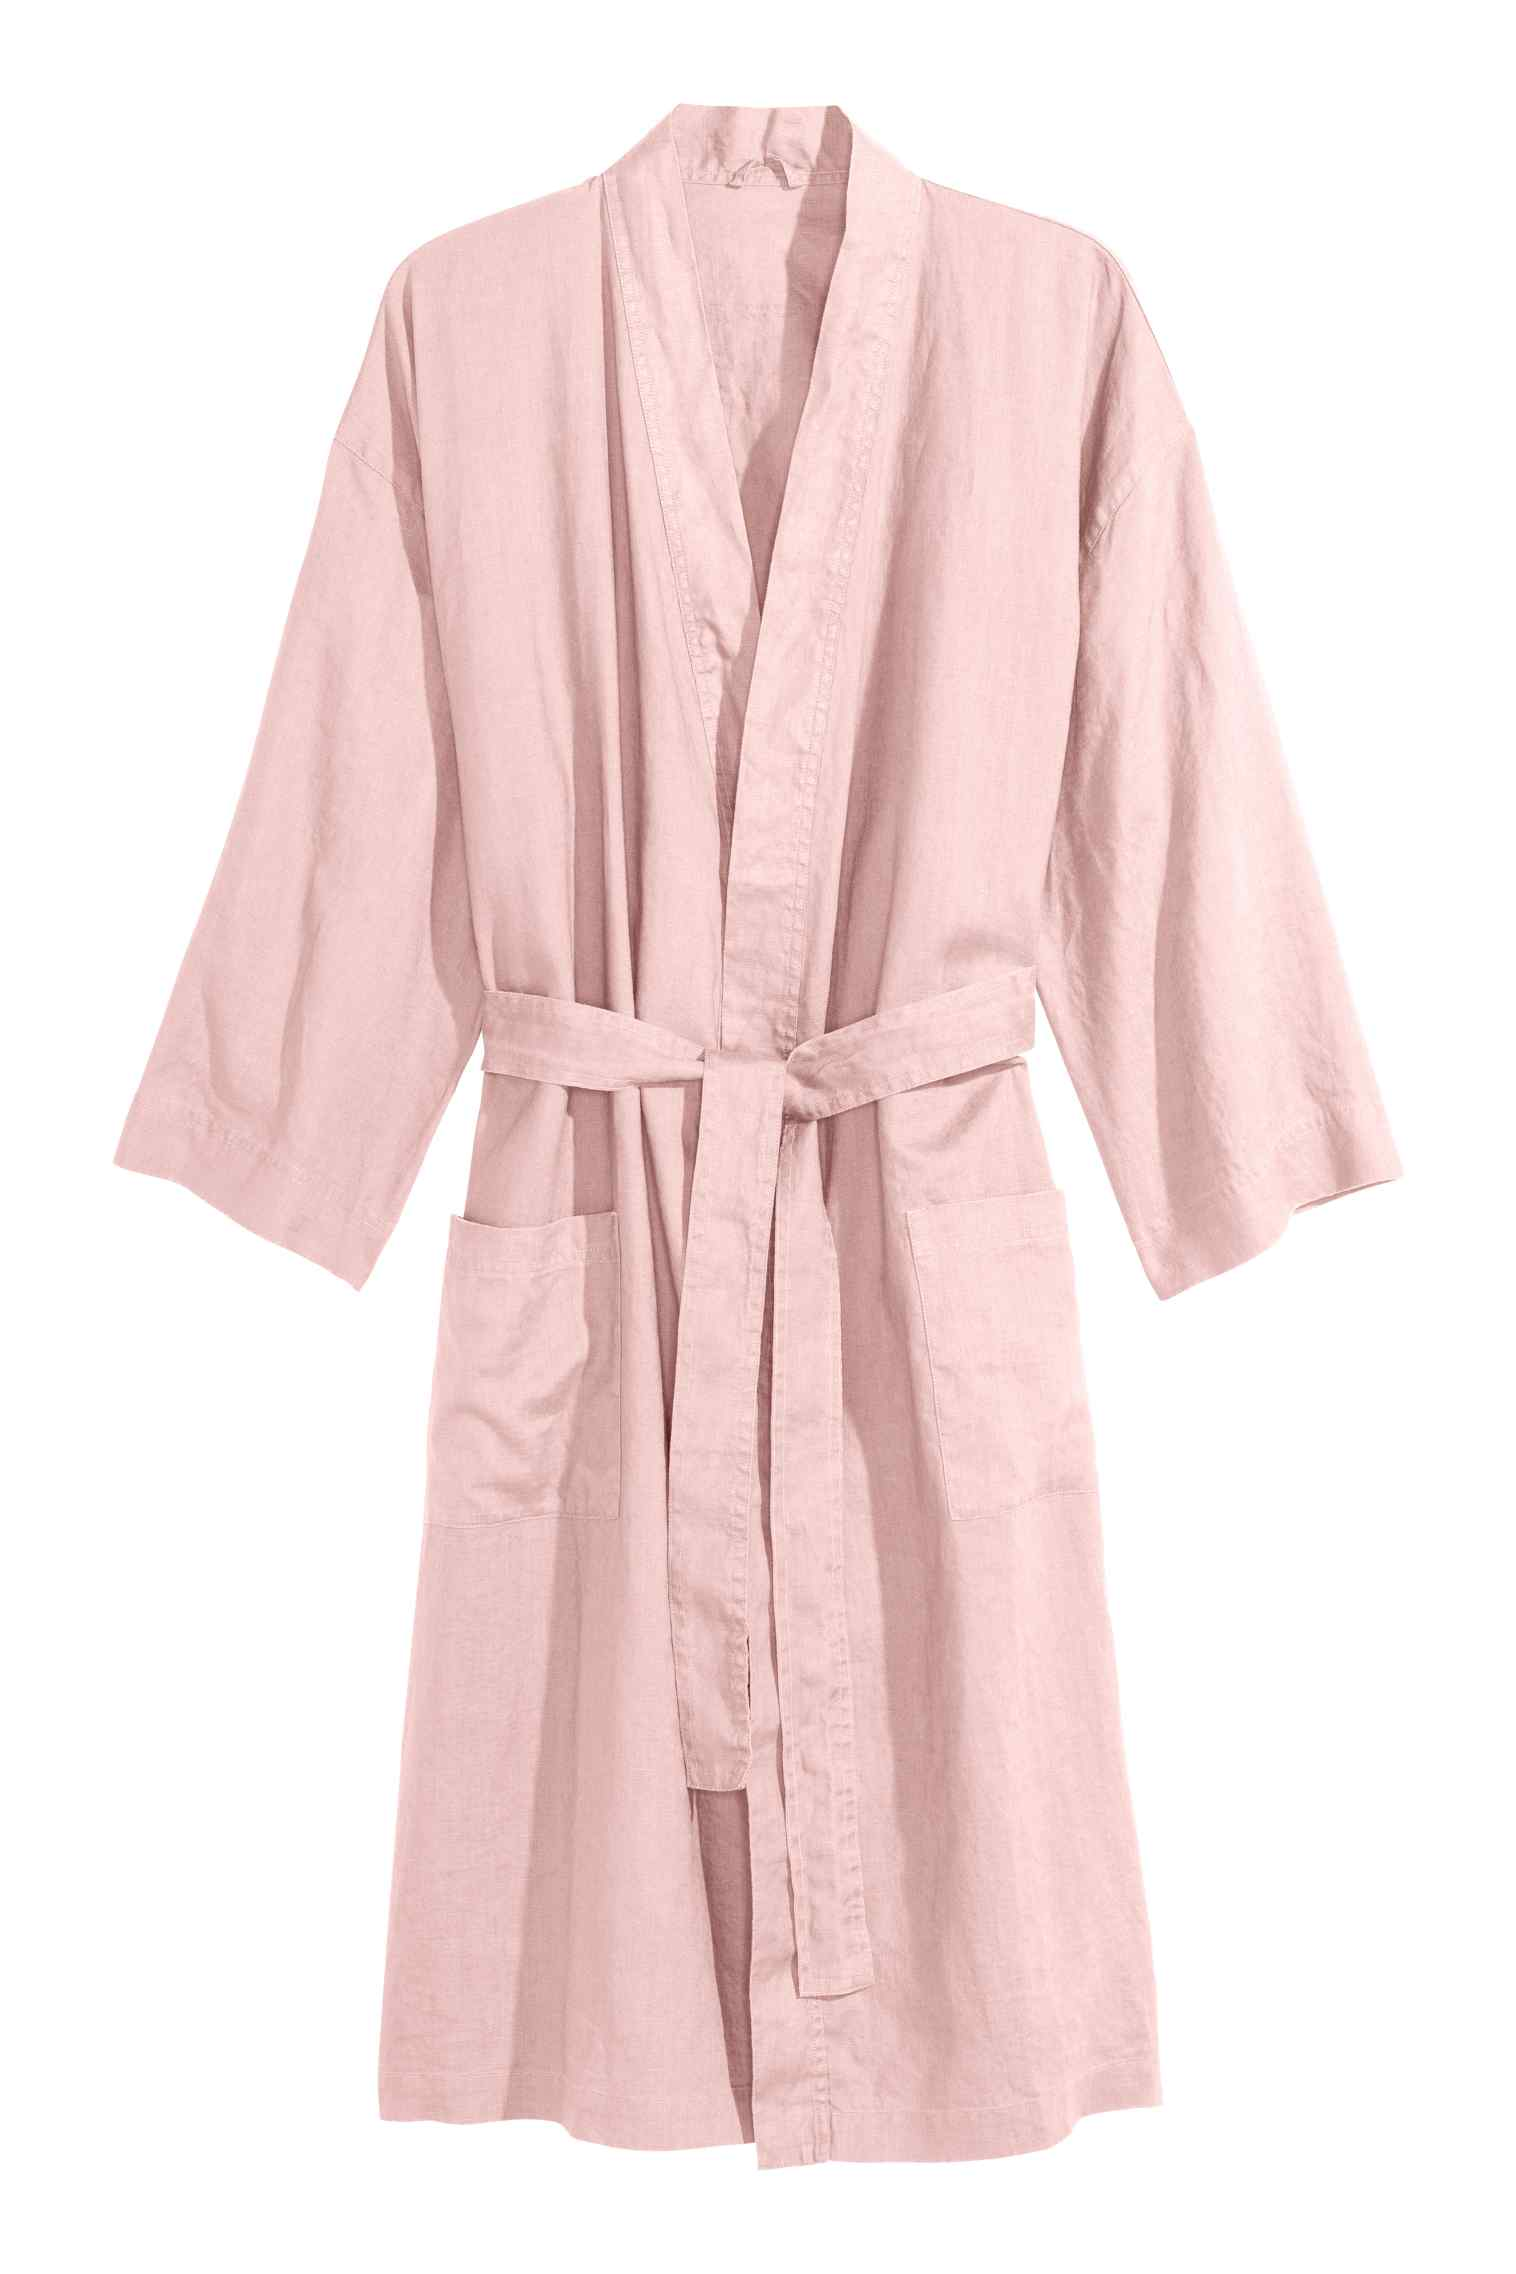 Washed linen dressing gown, $60